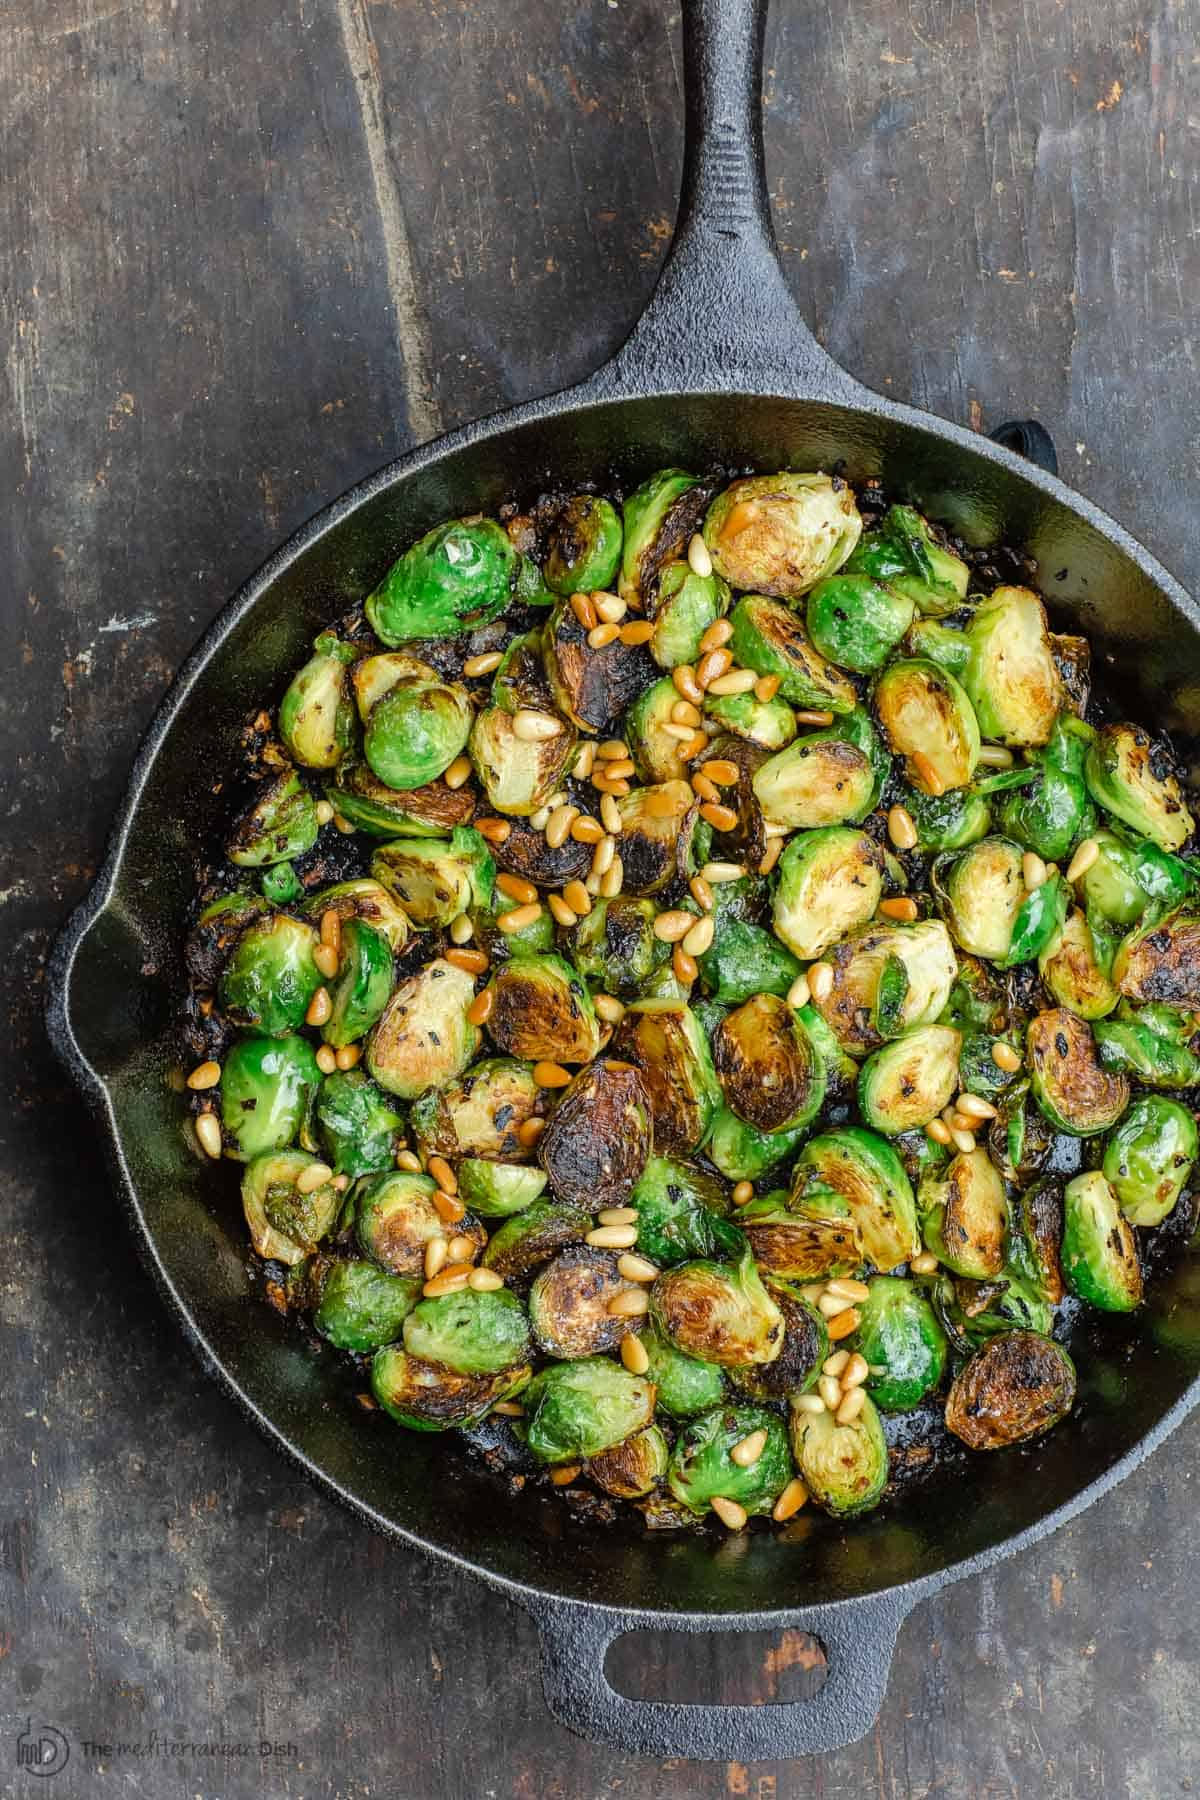 Brussel sprouts in a cast iron frying pan